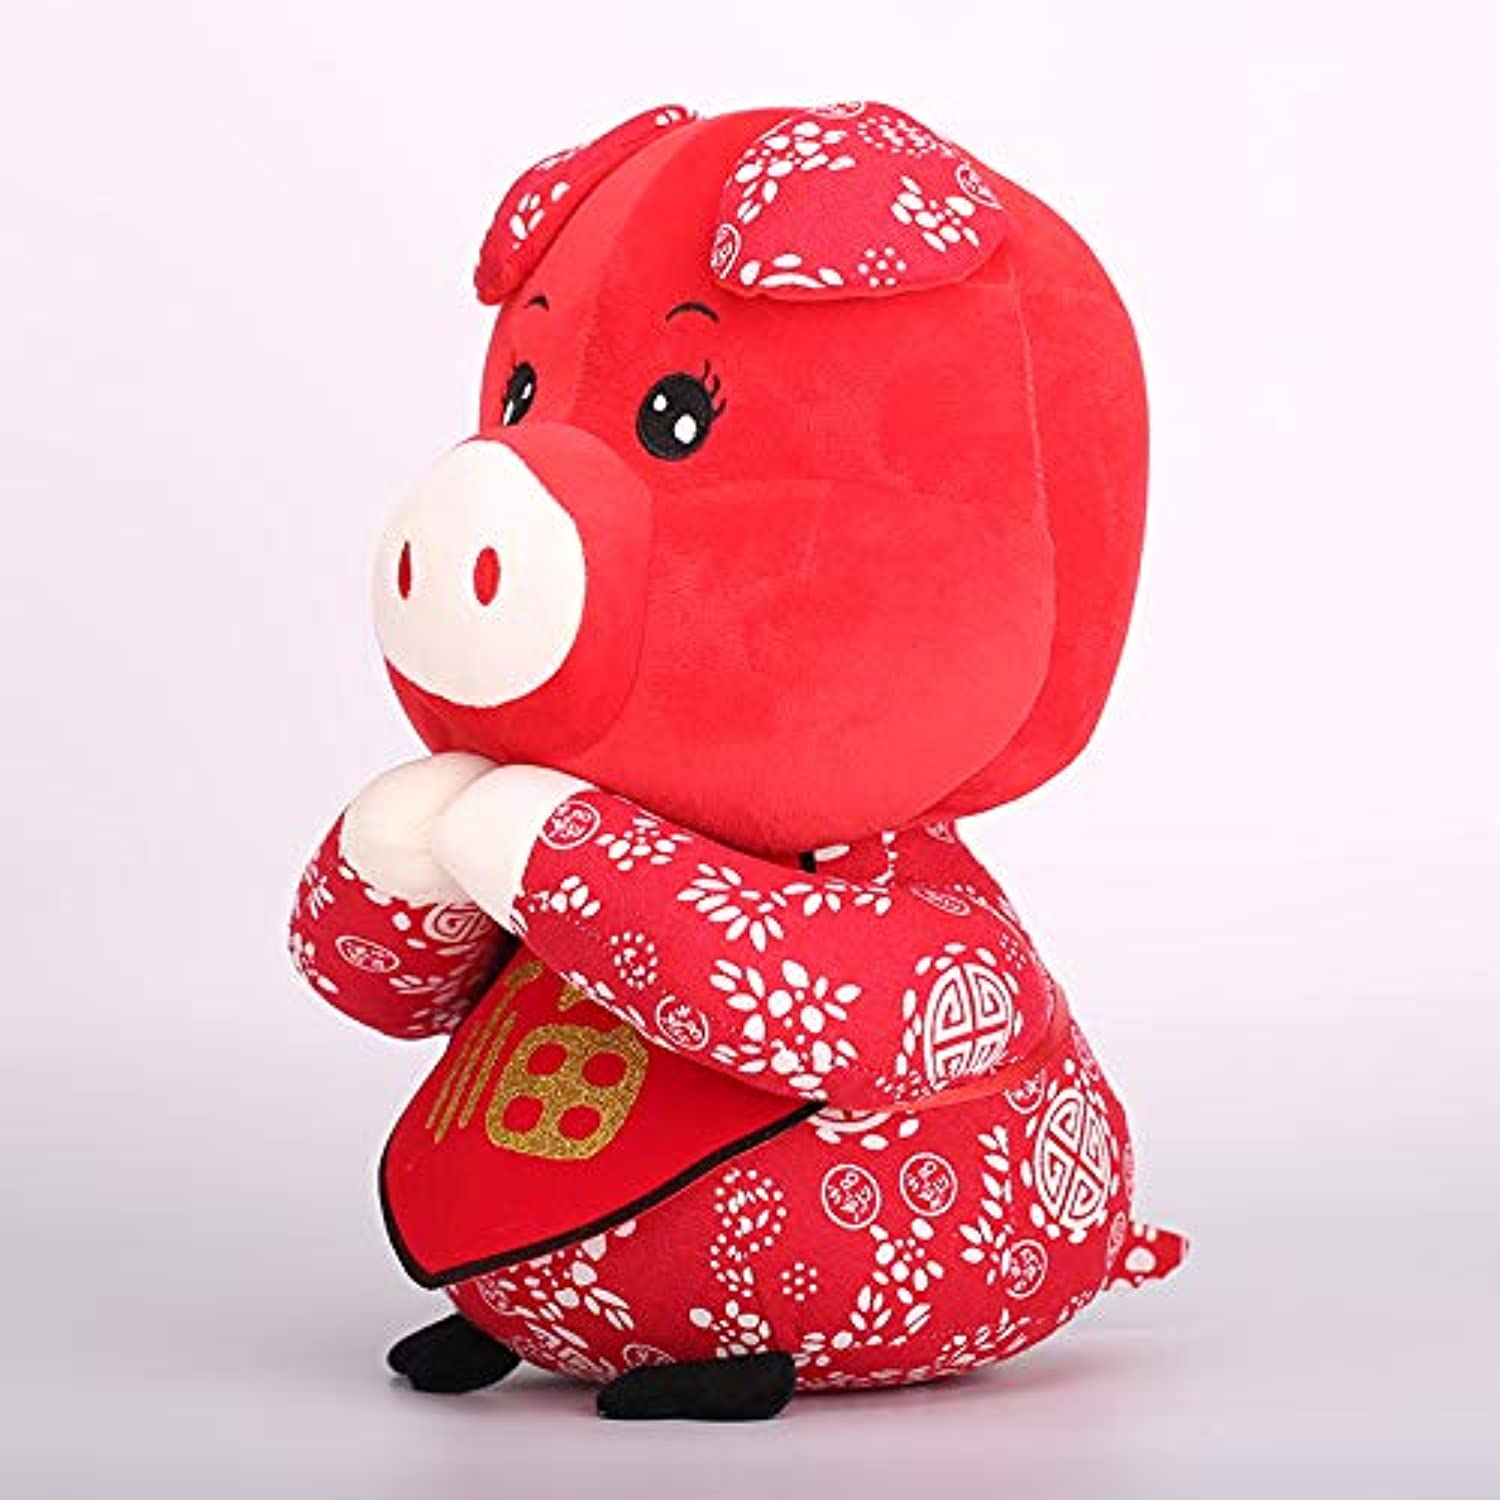 DONGER Zodiac Pig Toy Pig Year Mascot Doll Doll Small Gift, Xiangyun Pig Large, 30 Cm